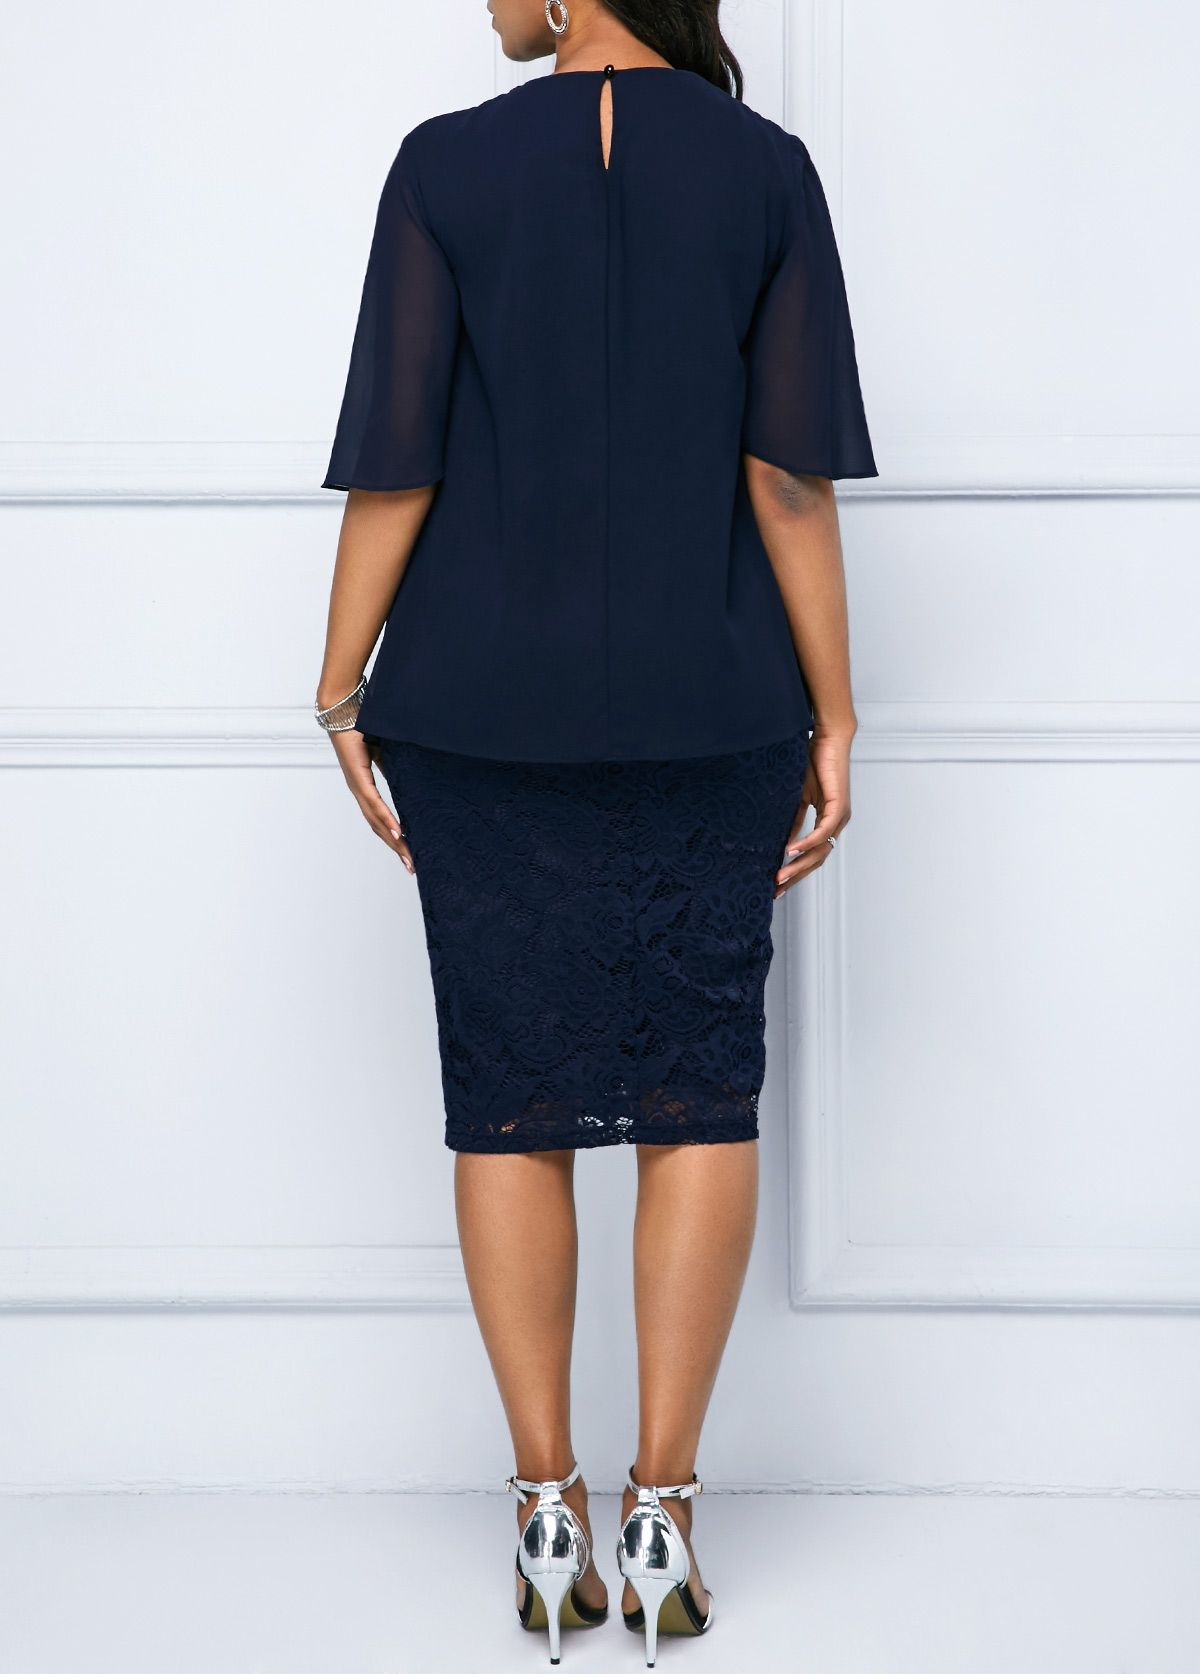 4234fc973f837 Chiffon Overlay Navy Blue Half Sleeve Lace Dress